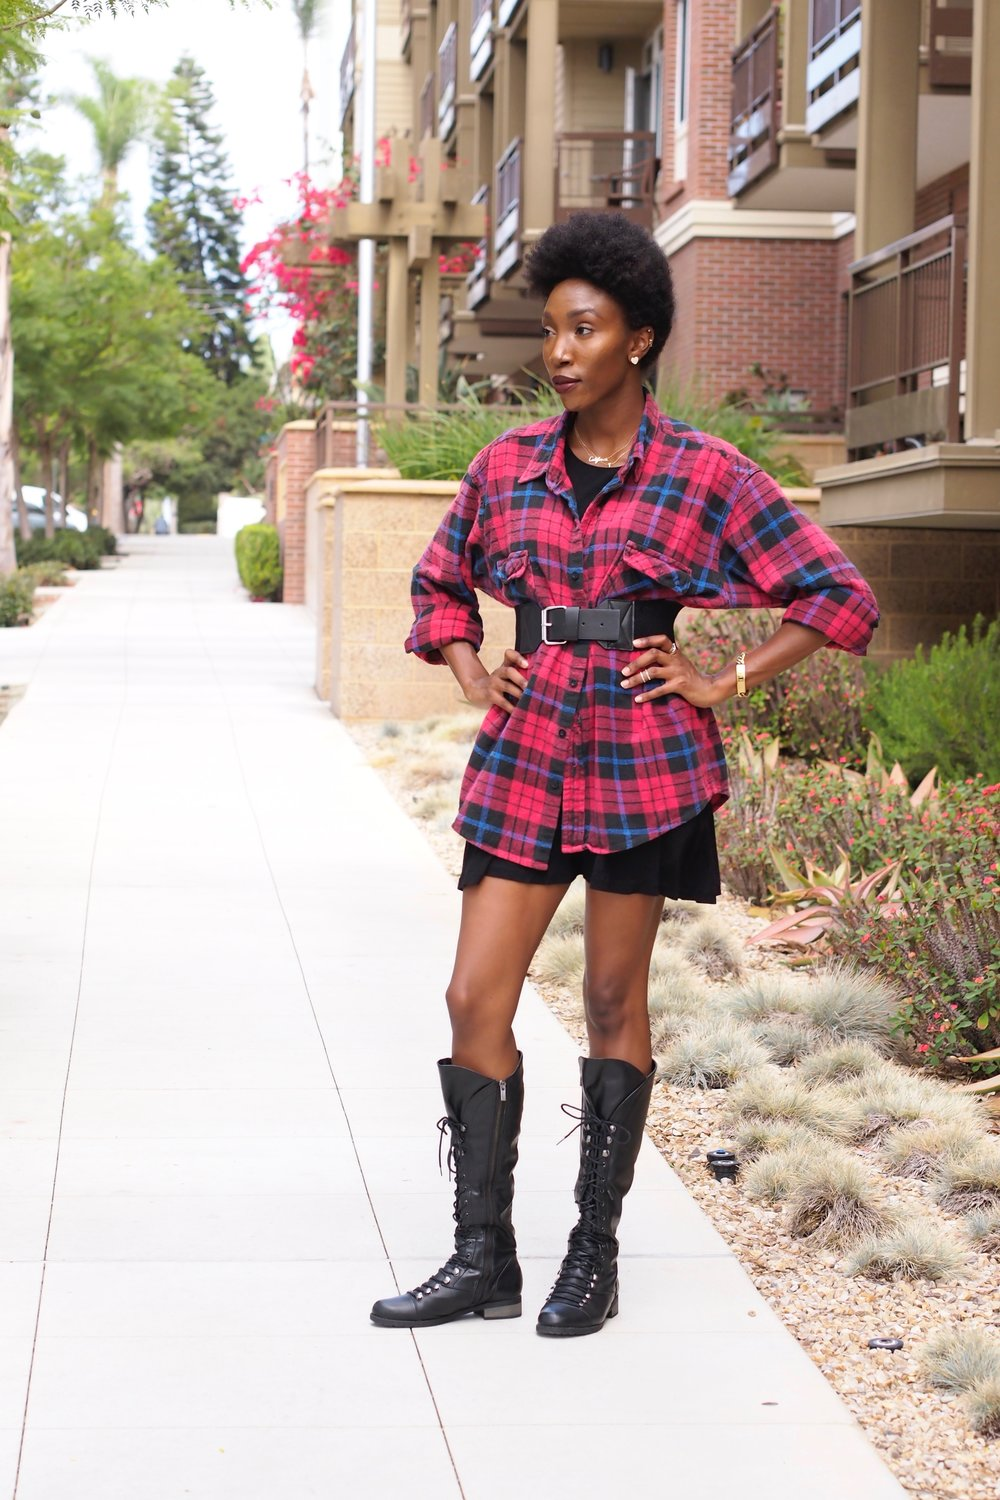 This Flannel is actually from the Mens section and I added a LBD to add a little length and for layering. Then I put a belt on top for Shape. I love shopping the Mens section!!! You can find the best oversized Shirts and make them dresses or add them to layered looks.